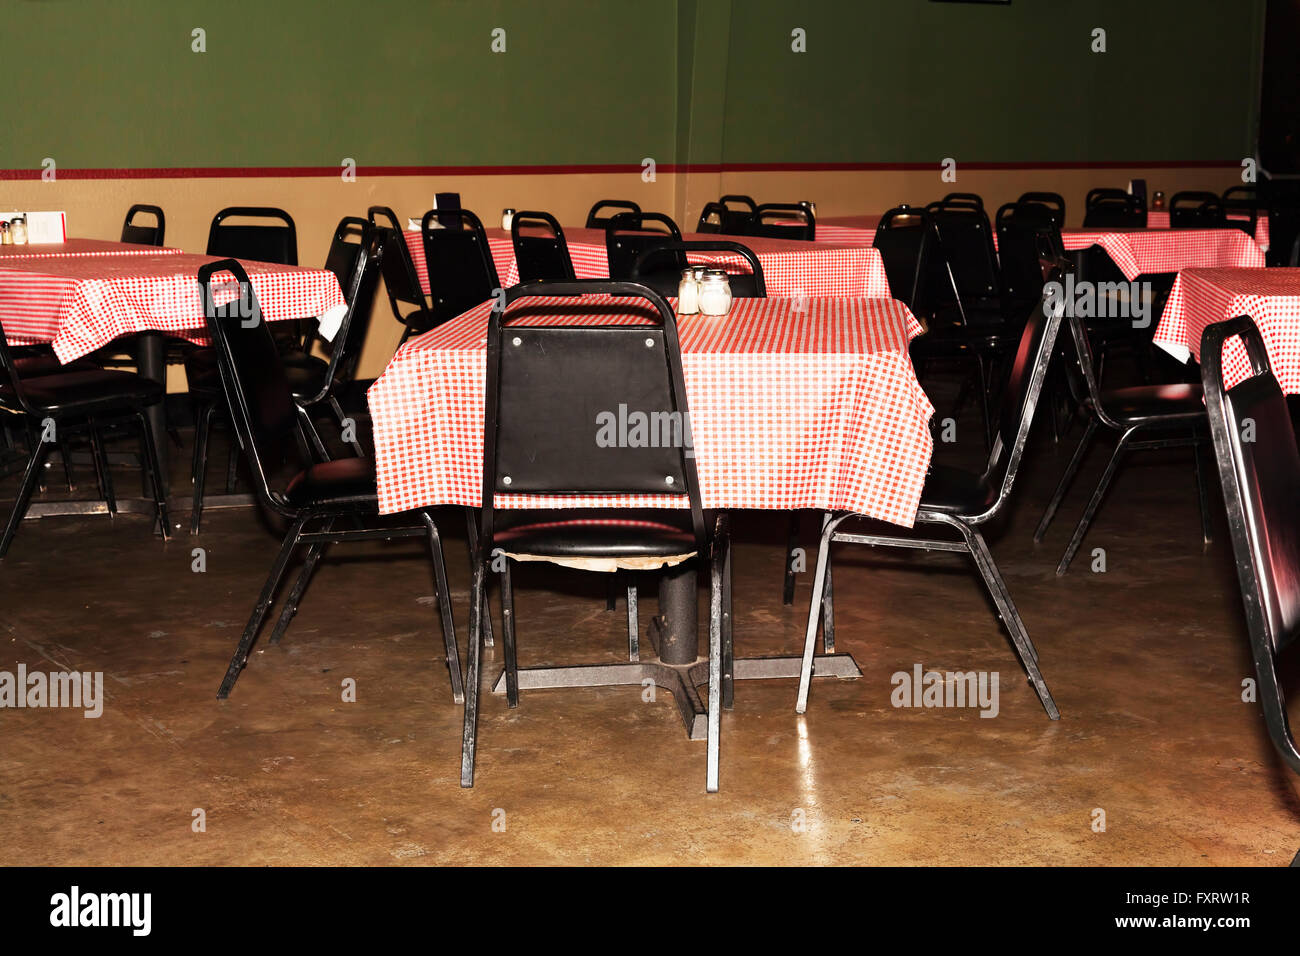 Empty Chairs And Tables At Inexpensive Restaurant - Stock Image